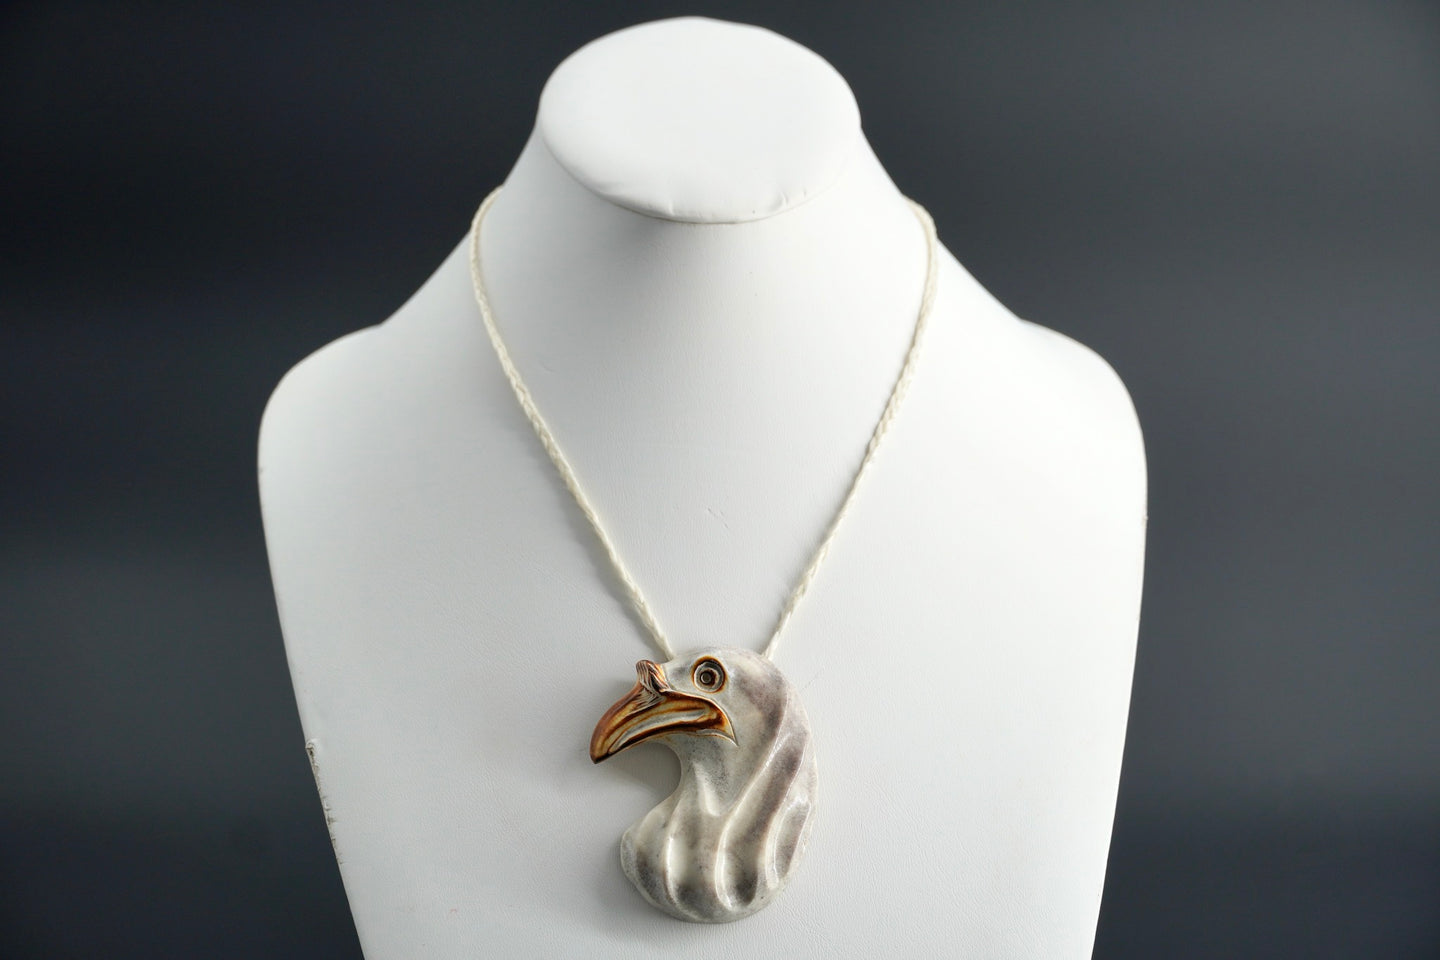 Crow Head Necklace by Dennis Shorty